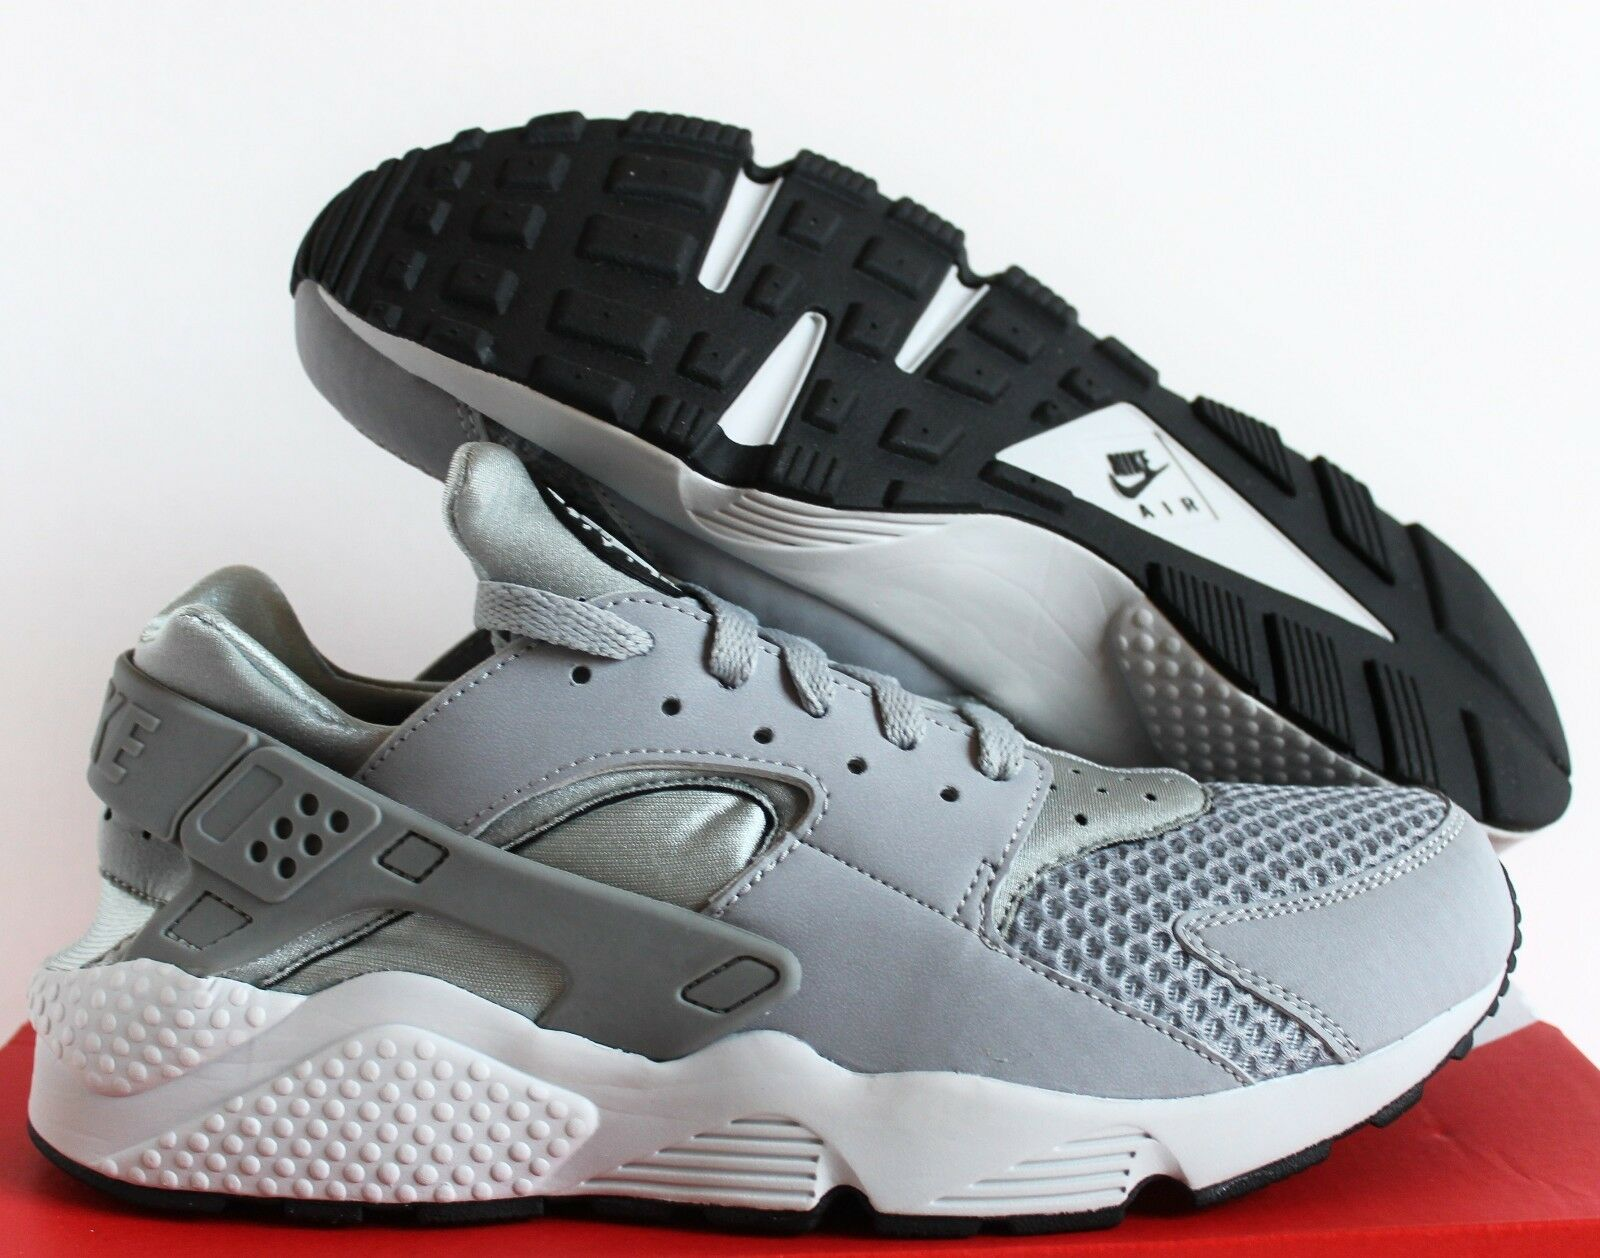 NIKE AIR HUARACHE WOLF GREY-PURE PLATINUM-BLACK-WHITE SZ 7.5